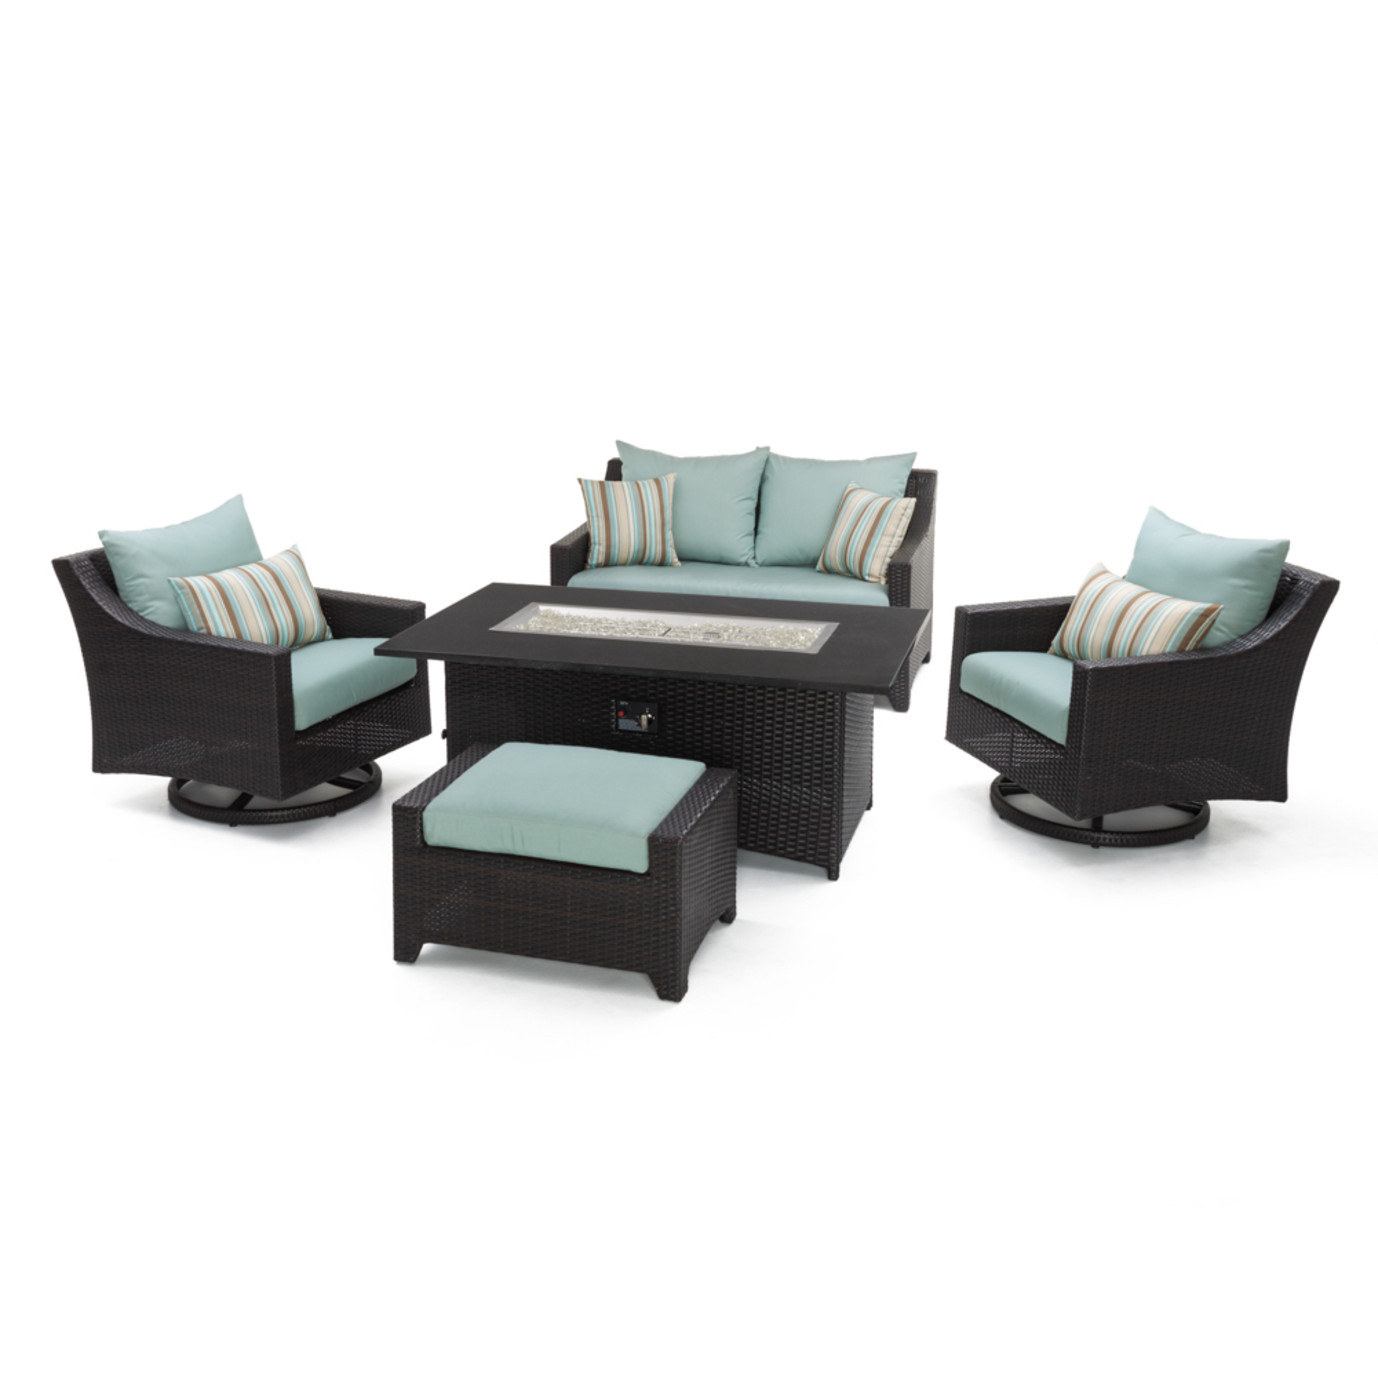 Deco™ 5pc Love and Motion Club Fire Set - Bliss Blue